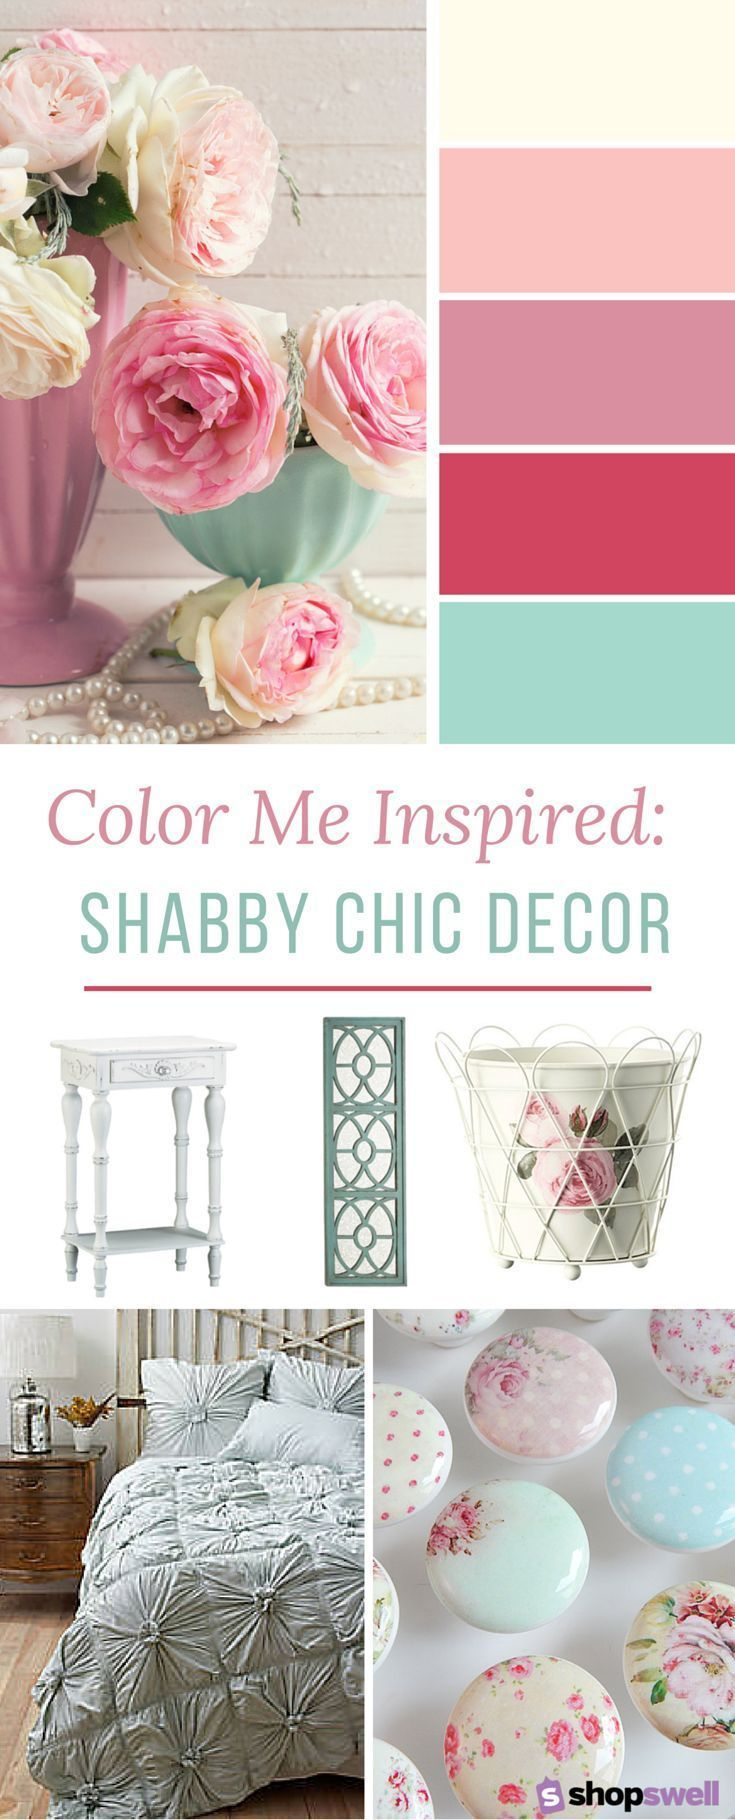 20 Home Decor Essentials for the Shabby Chic Bedroom – Simone Hansen